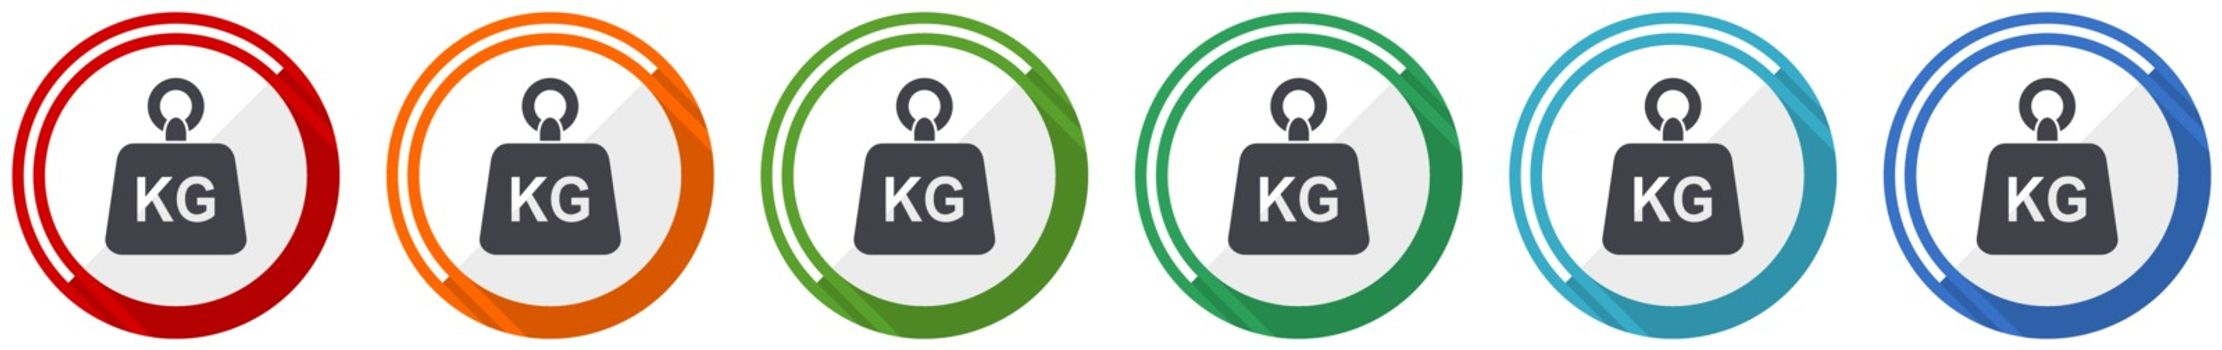 Weight, kg, kilogram icon set, flat design vector illustration in 6 colors options for webdesign and mobile applications